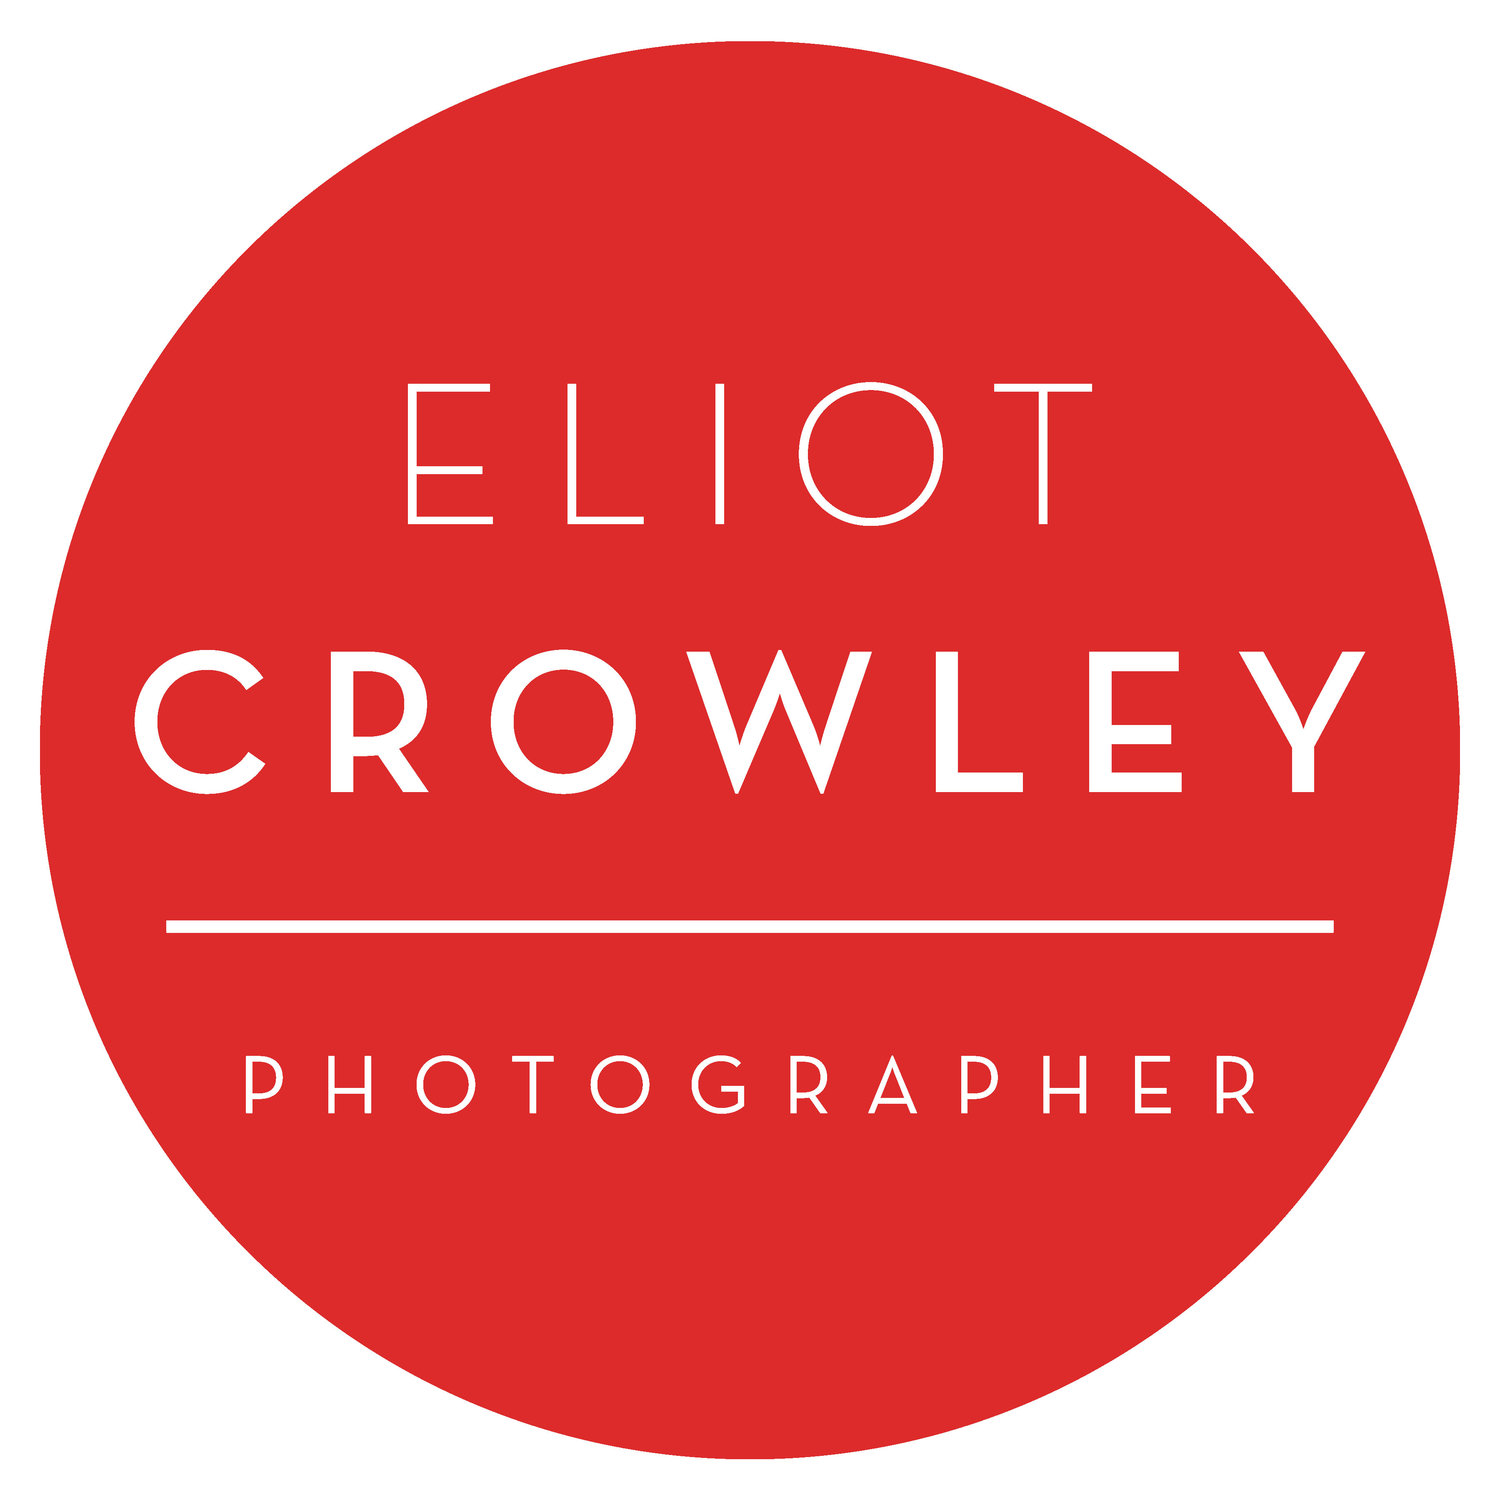 Eliot Crowley : Photographer